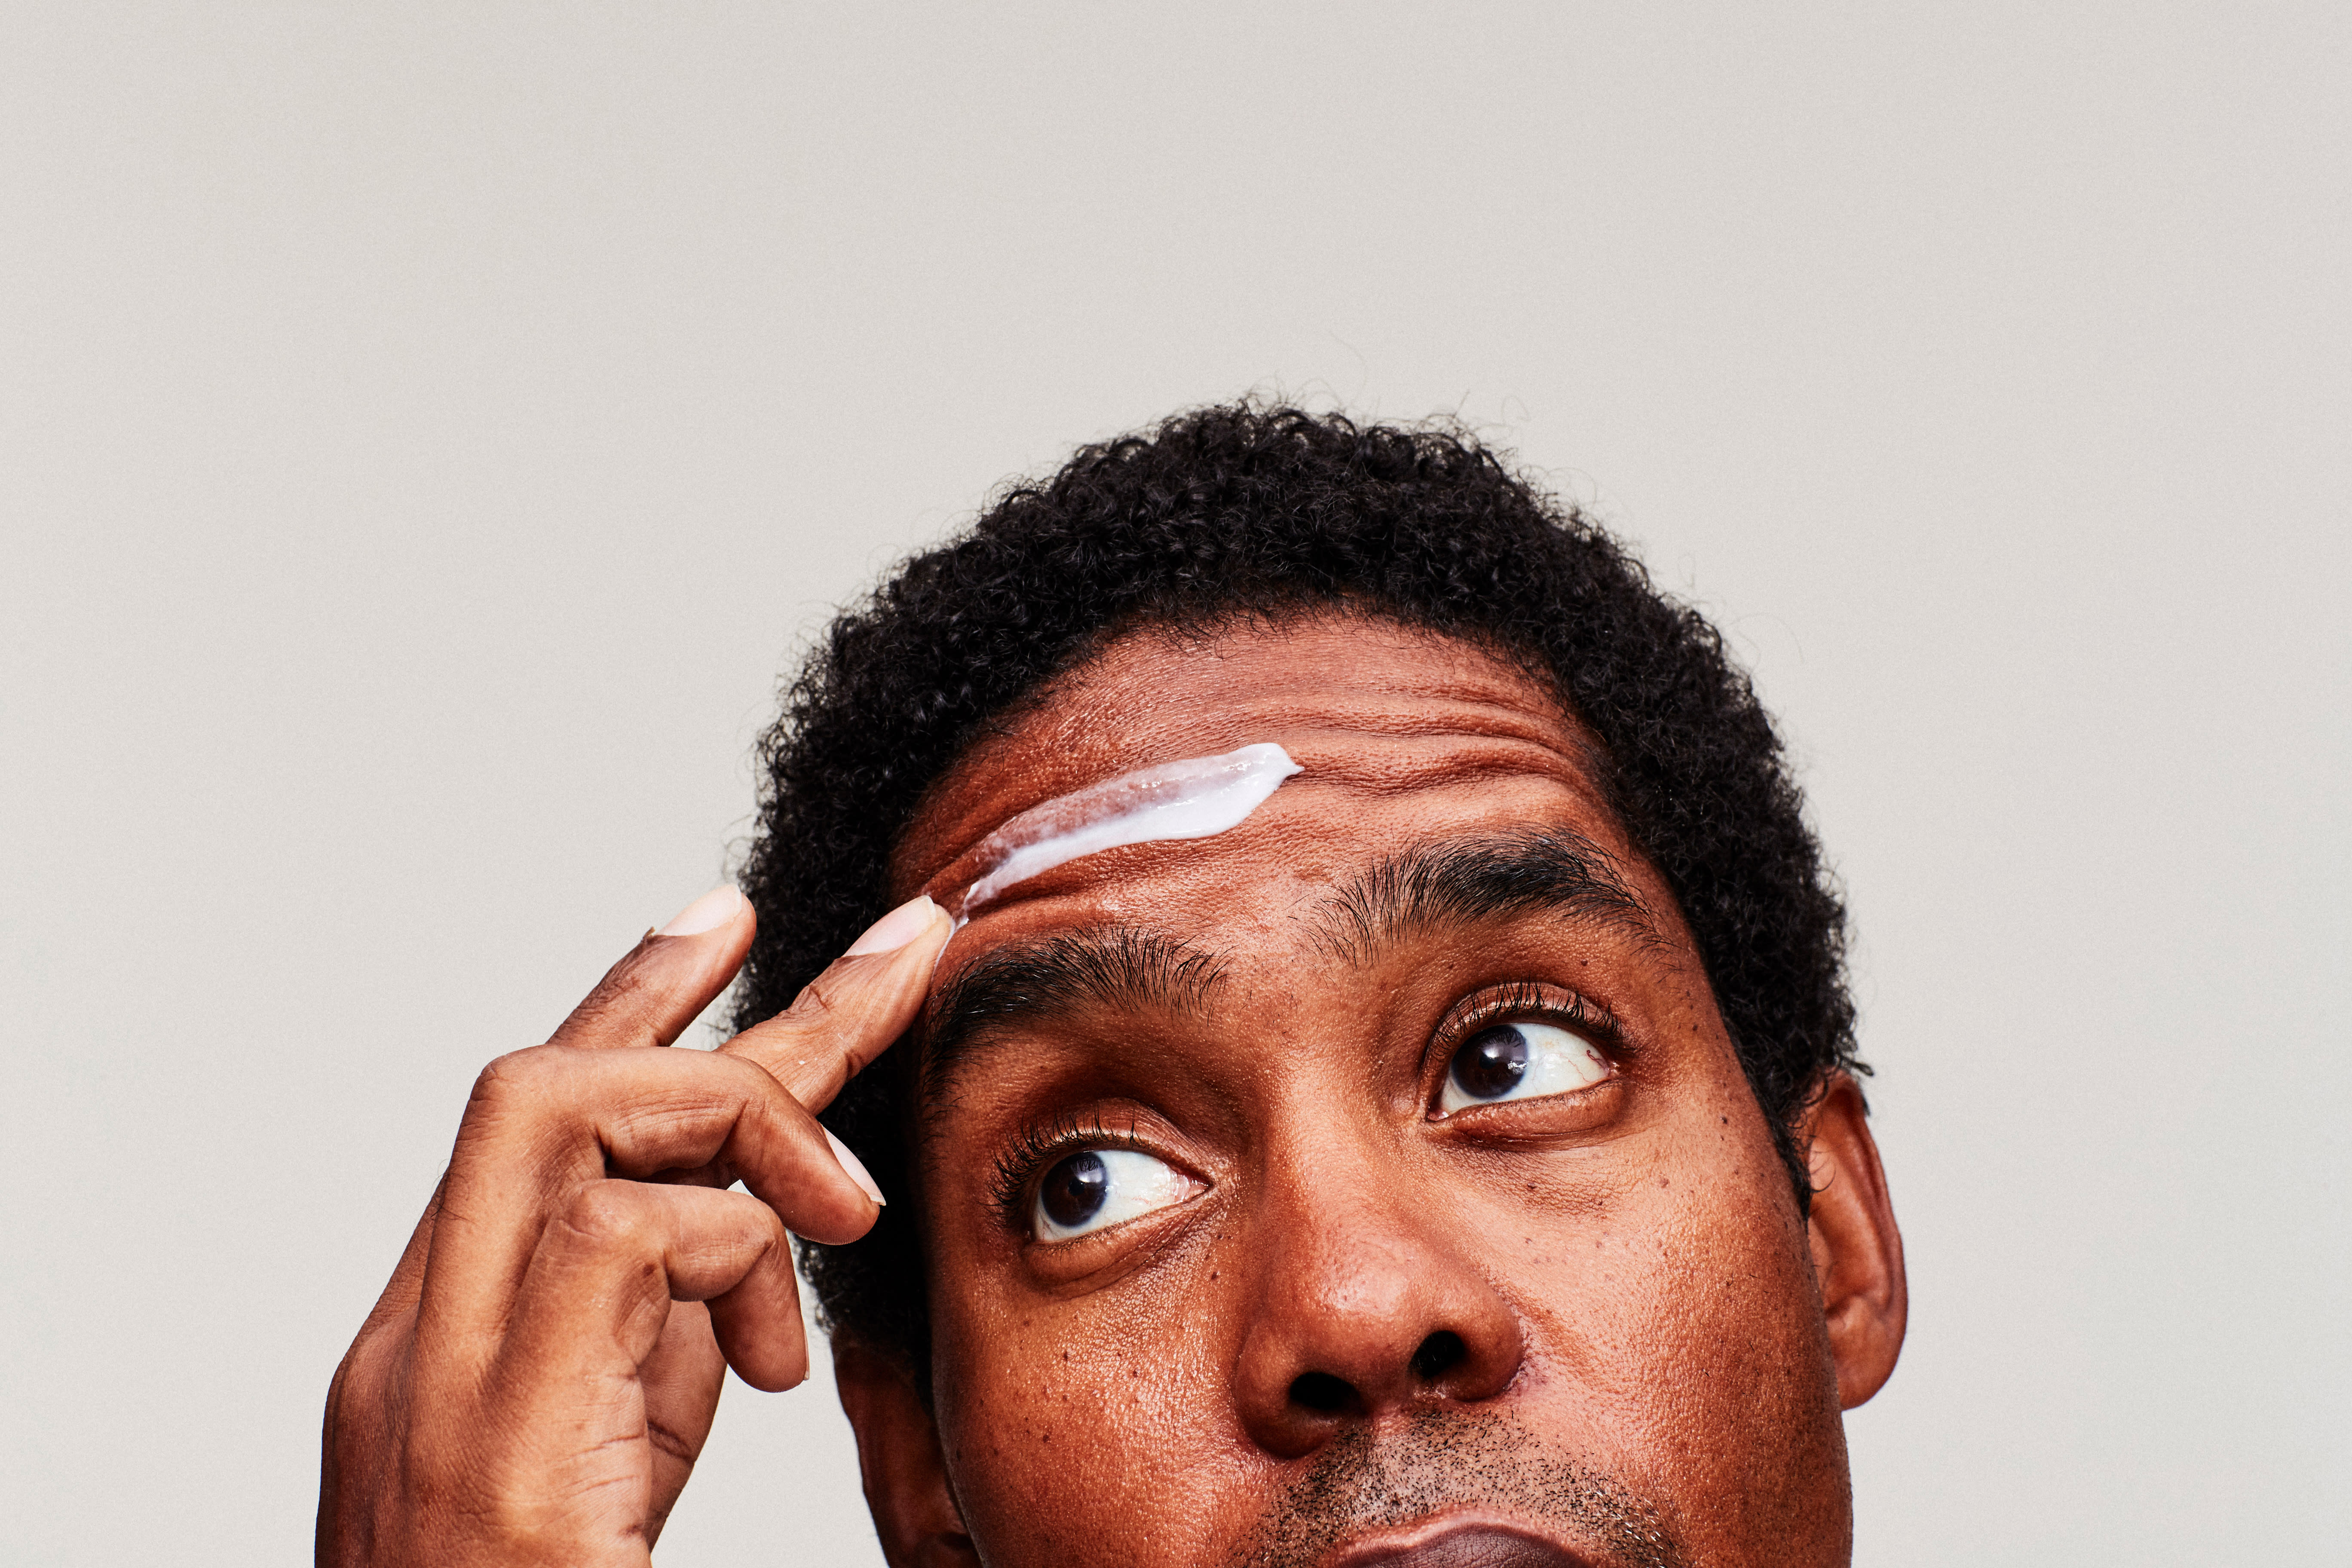 A closeup of a man putting cream on his forehead